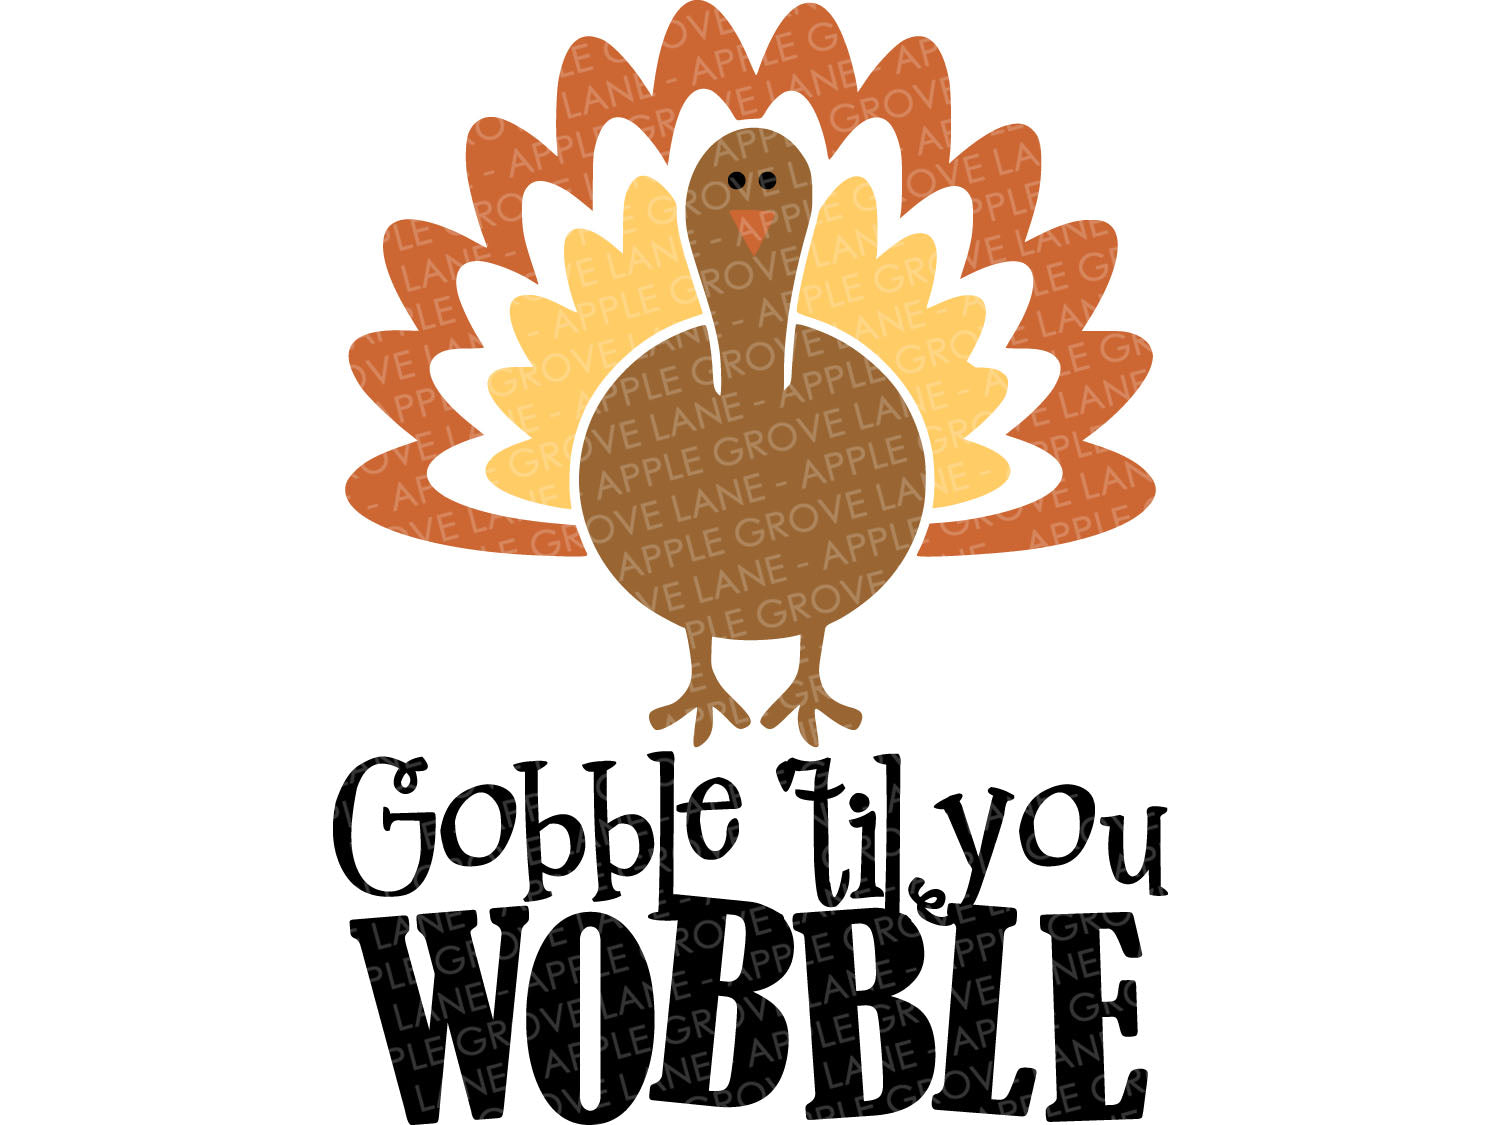 Thanksgiving Svg - Gobble Til You Wobble Svg - Gobble Svg - Turkey Svg - Fall Svg - Turkey Day Svg - Autumn Svg - Svg Eps Png Dxf